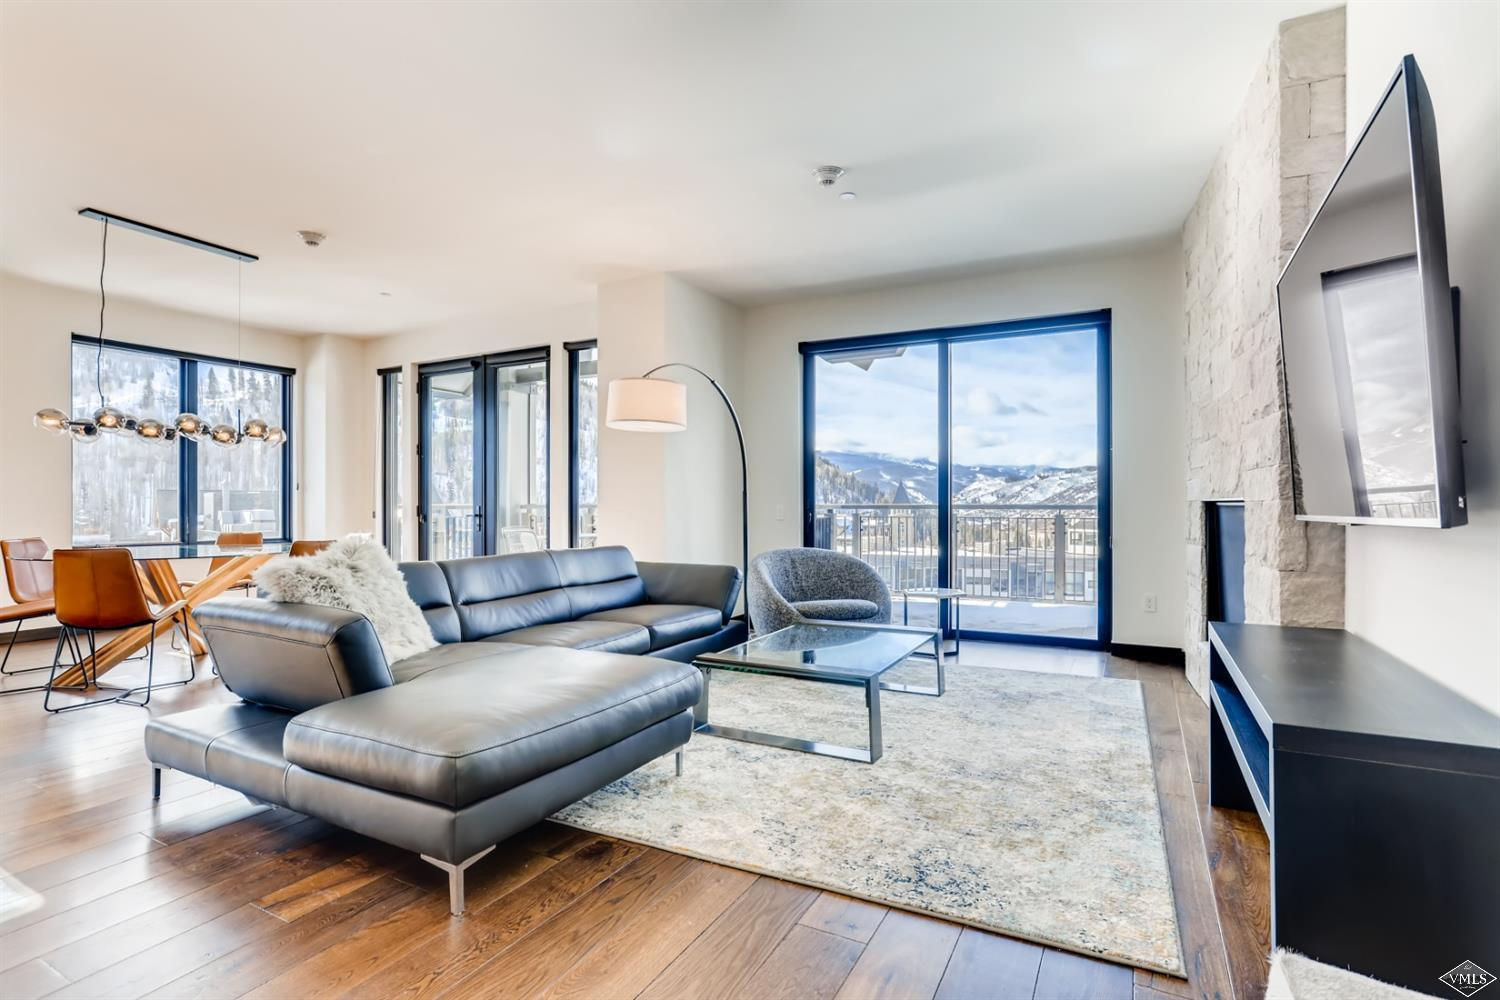 This Southwest facing, spacious 3-bedroom corner residence features high-end, contemporary finishes, and 3 large decks with panoramic Vail mountain and sunset views. Luxury amenities include ski concierge, fitness center, and on-site management.